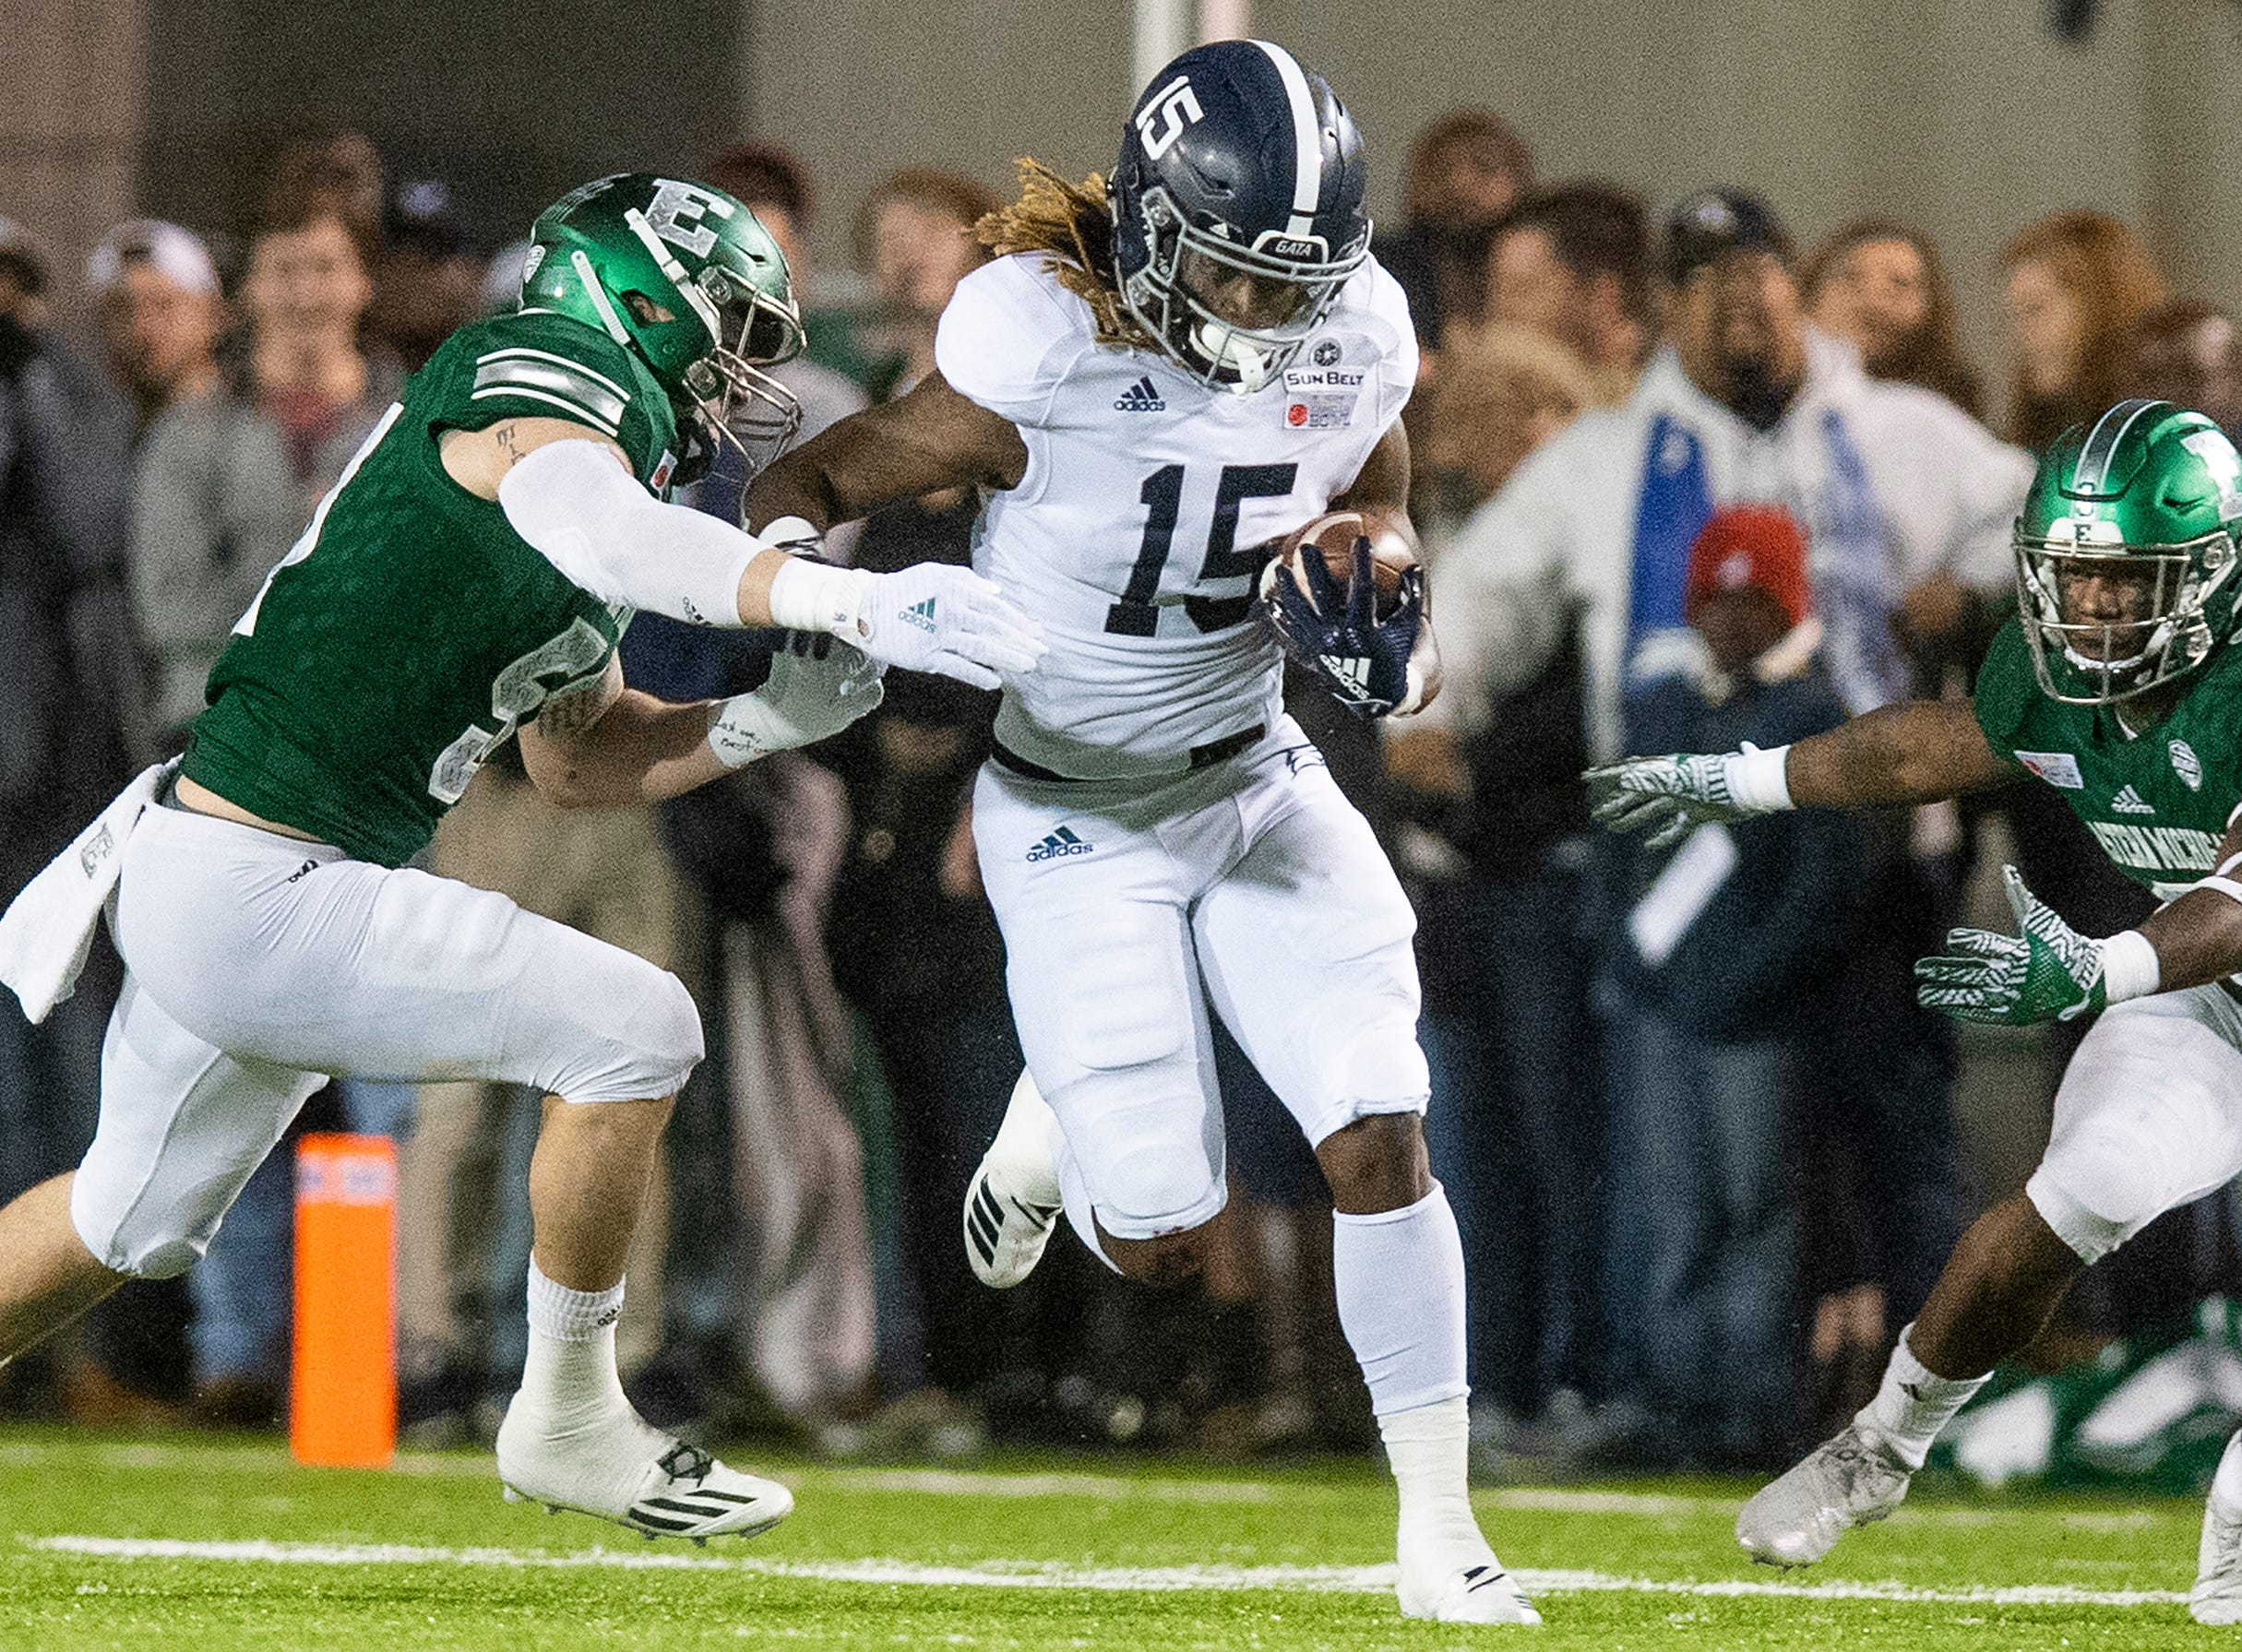 Georgia Southern running back Monteo Garrett (15) carries the ball against Eastern Michigan during first half action in the Raycom Media  Camellia Bowl held at Cramton Bowl in Montgomery, Ala., on Saturday December 15, 2018.